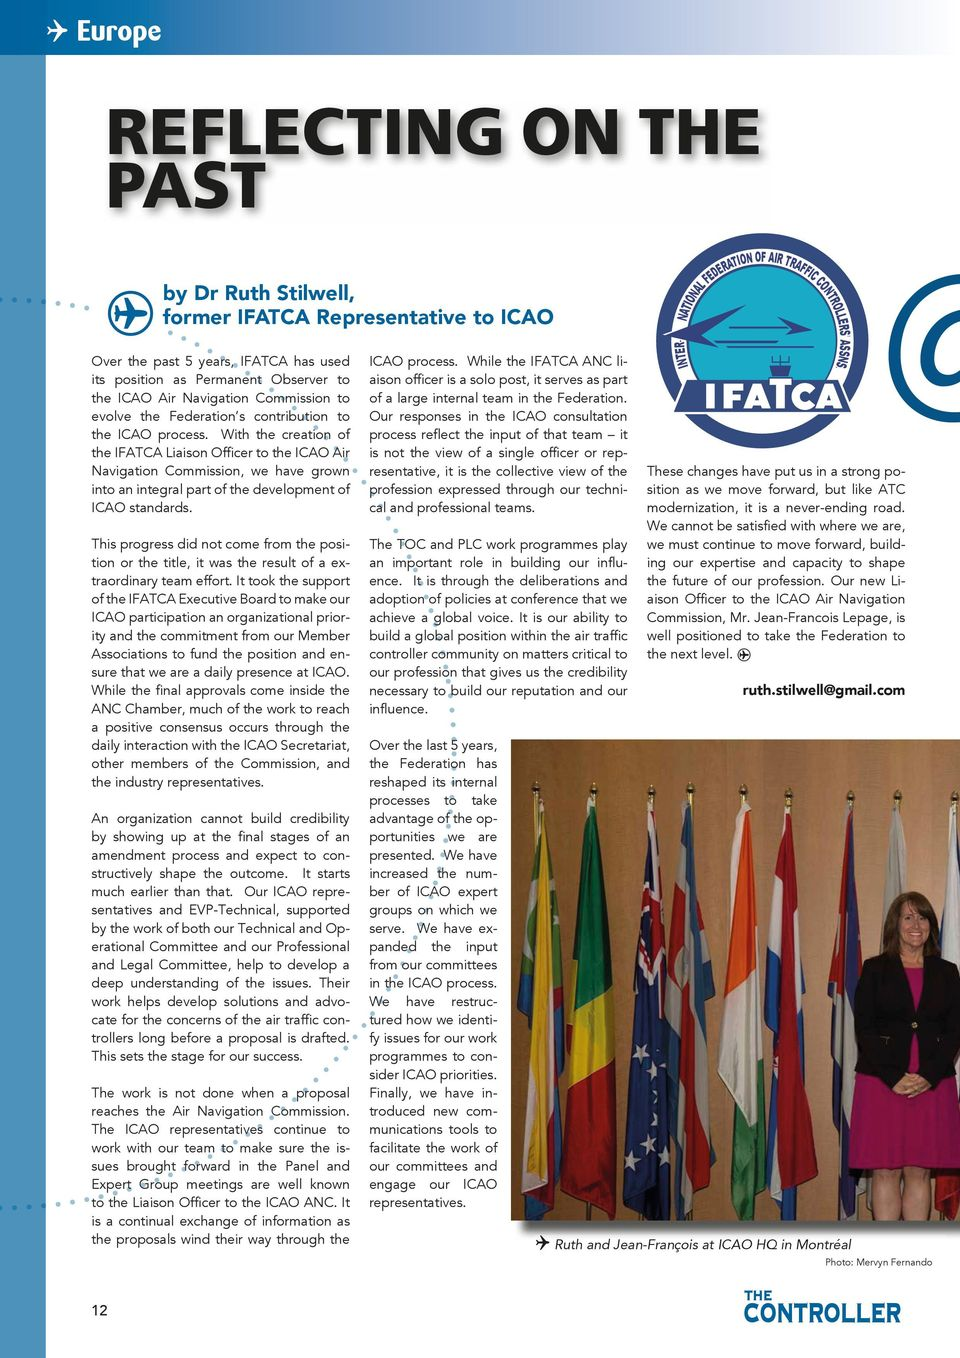 With the creation of the IFATCA Liaison Officer to the ICAO Air Navigation Commission, we have grown into an integral part of the development of ICAO standards.